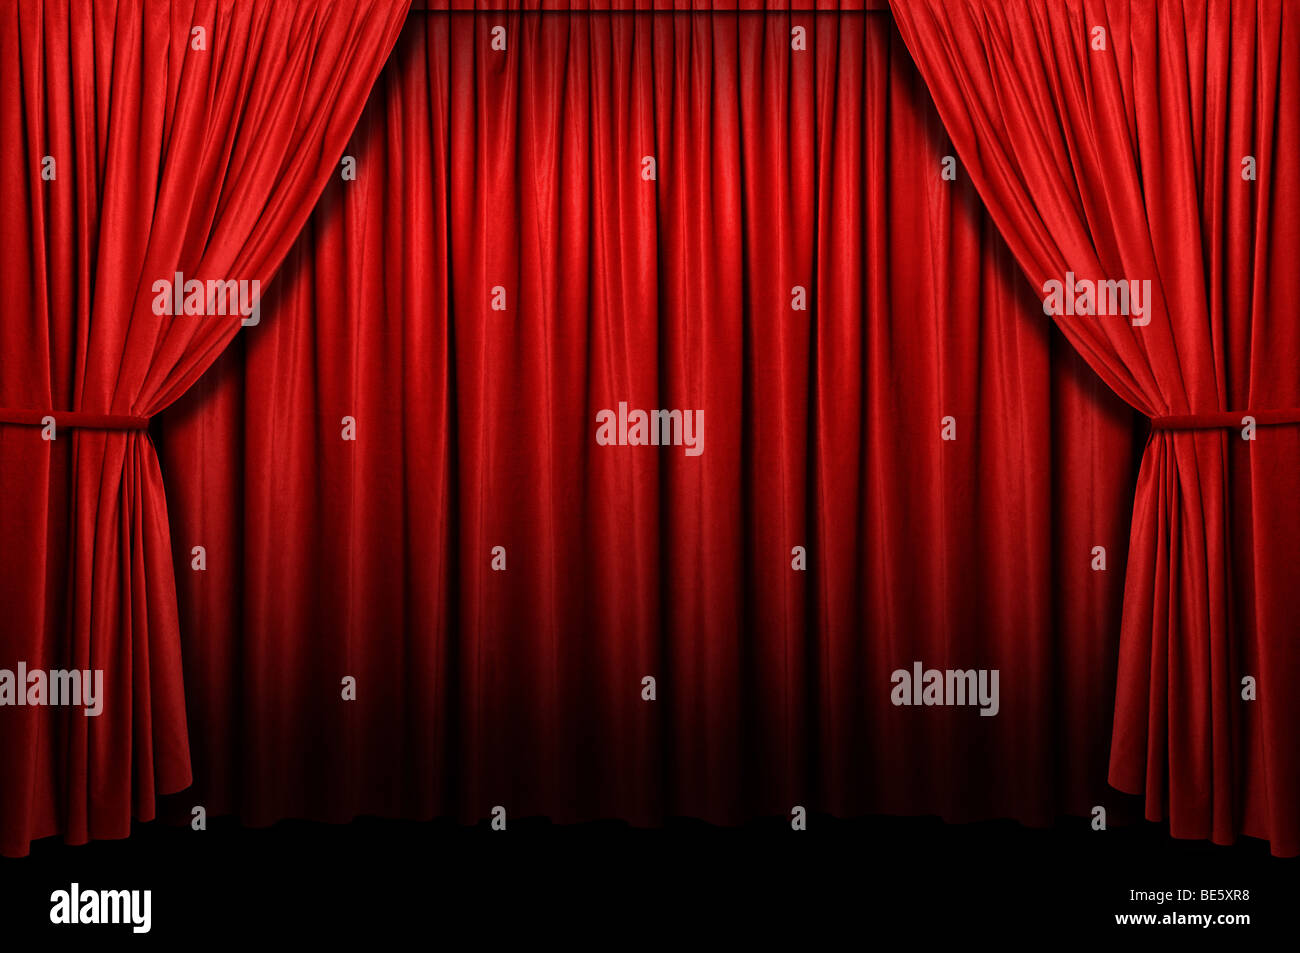 Cheap black stage curtains - Empty Stage Curtains With Lights Empty Stage Curtains With Lights Red Stage Curtain With Lights